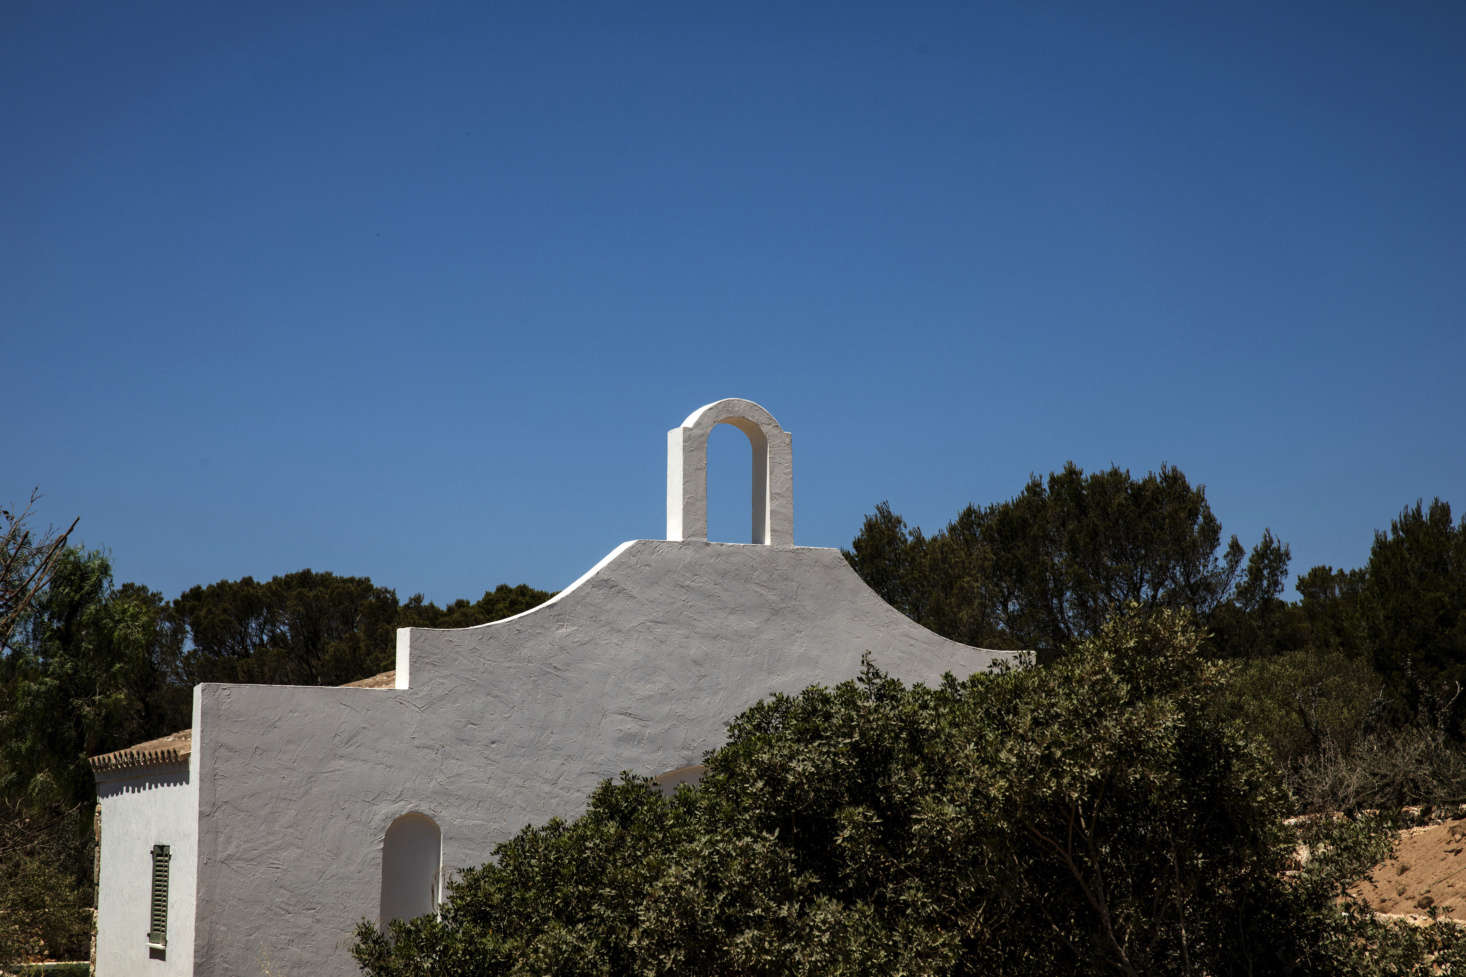 The original chapel on the property has been converted into guest quarters—but weddings here are also welcome.